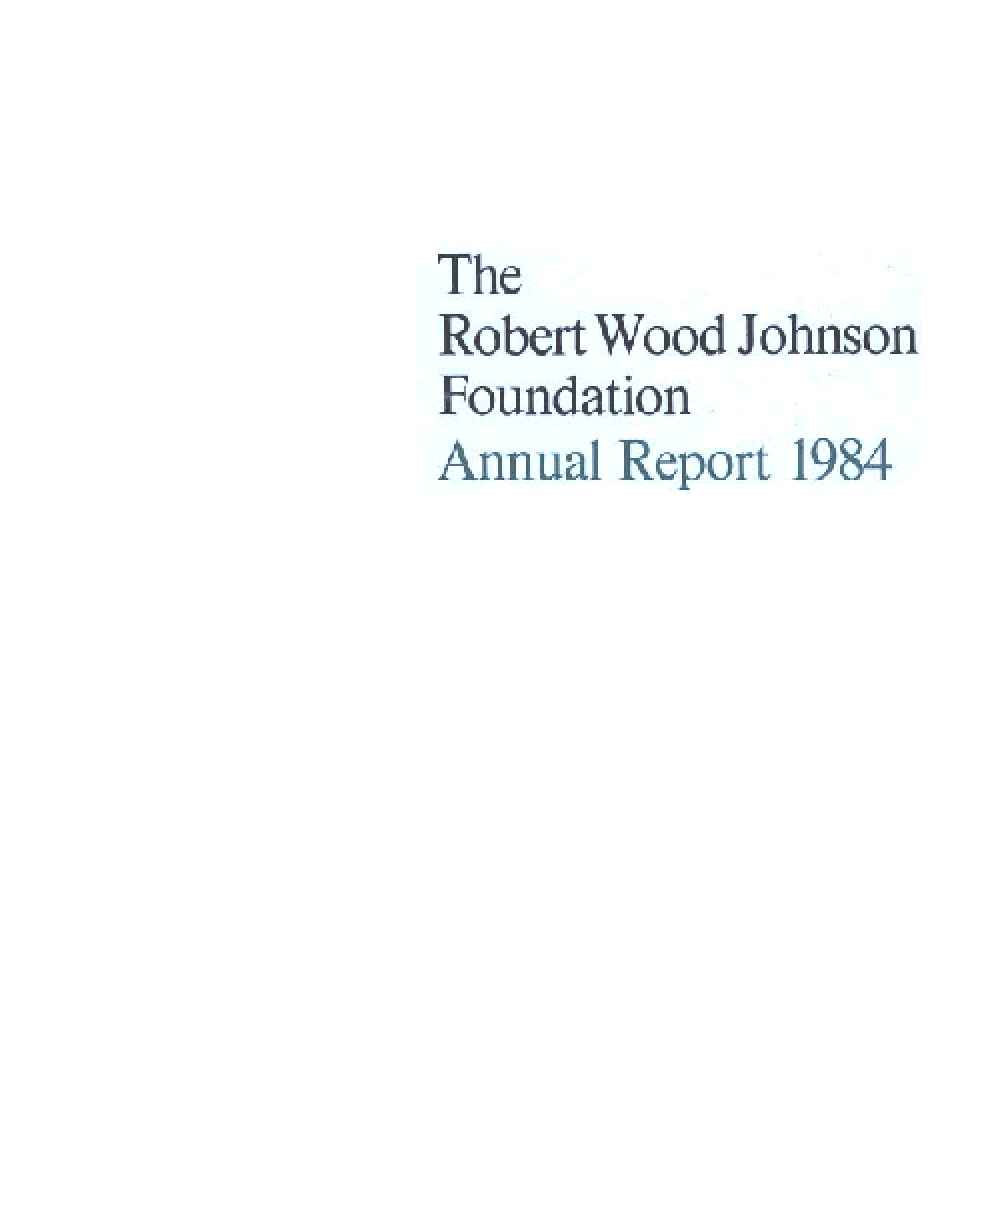 Robert Wood Johnson Foundation - 1984 Annual Report